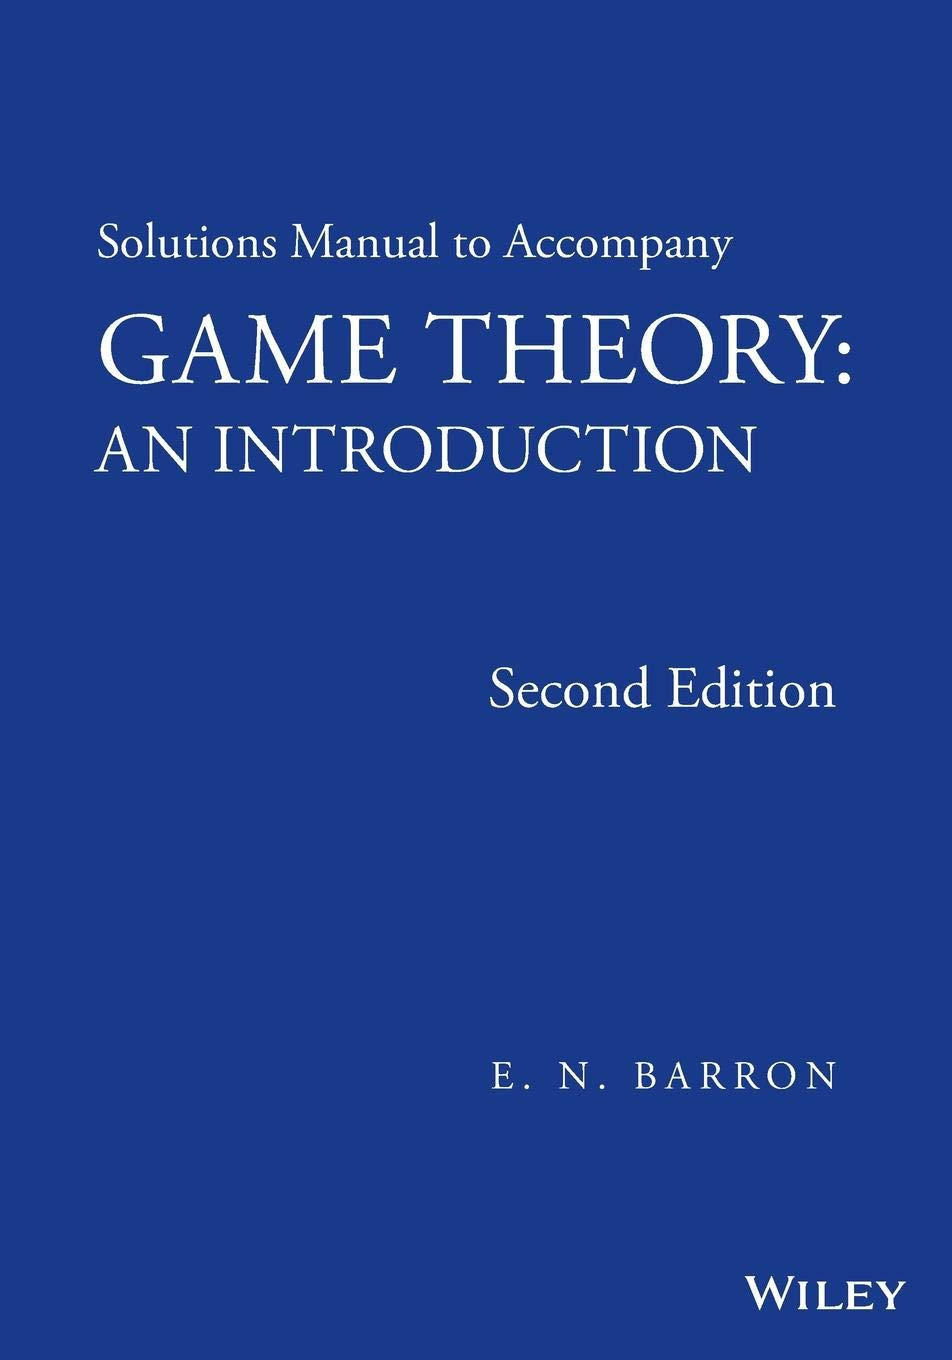 Buy Solutions Manual to Accompany Game Theory: An Introduction Book Online  at Low Prices in India | Solutions Manual to Accompany Game Theory: An ...